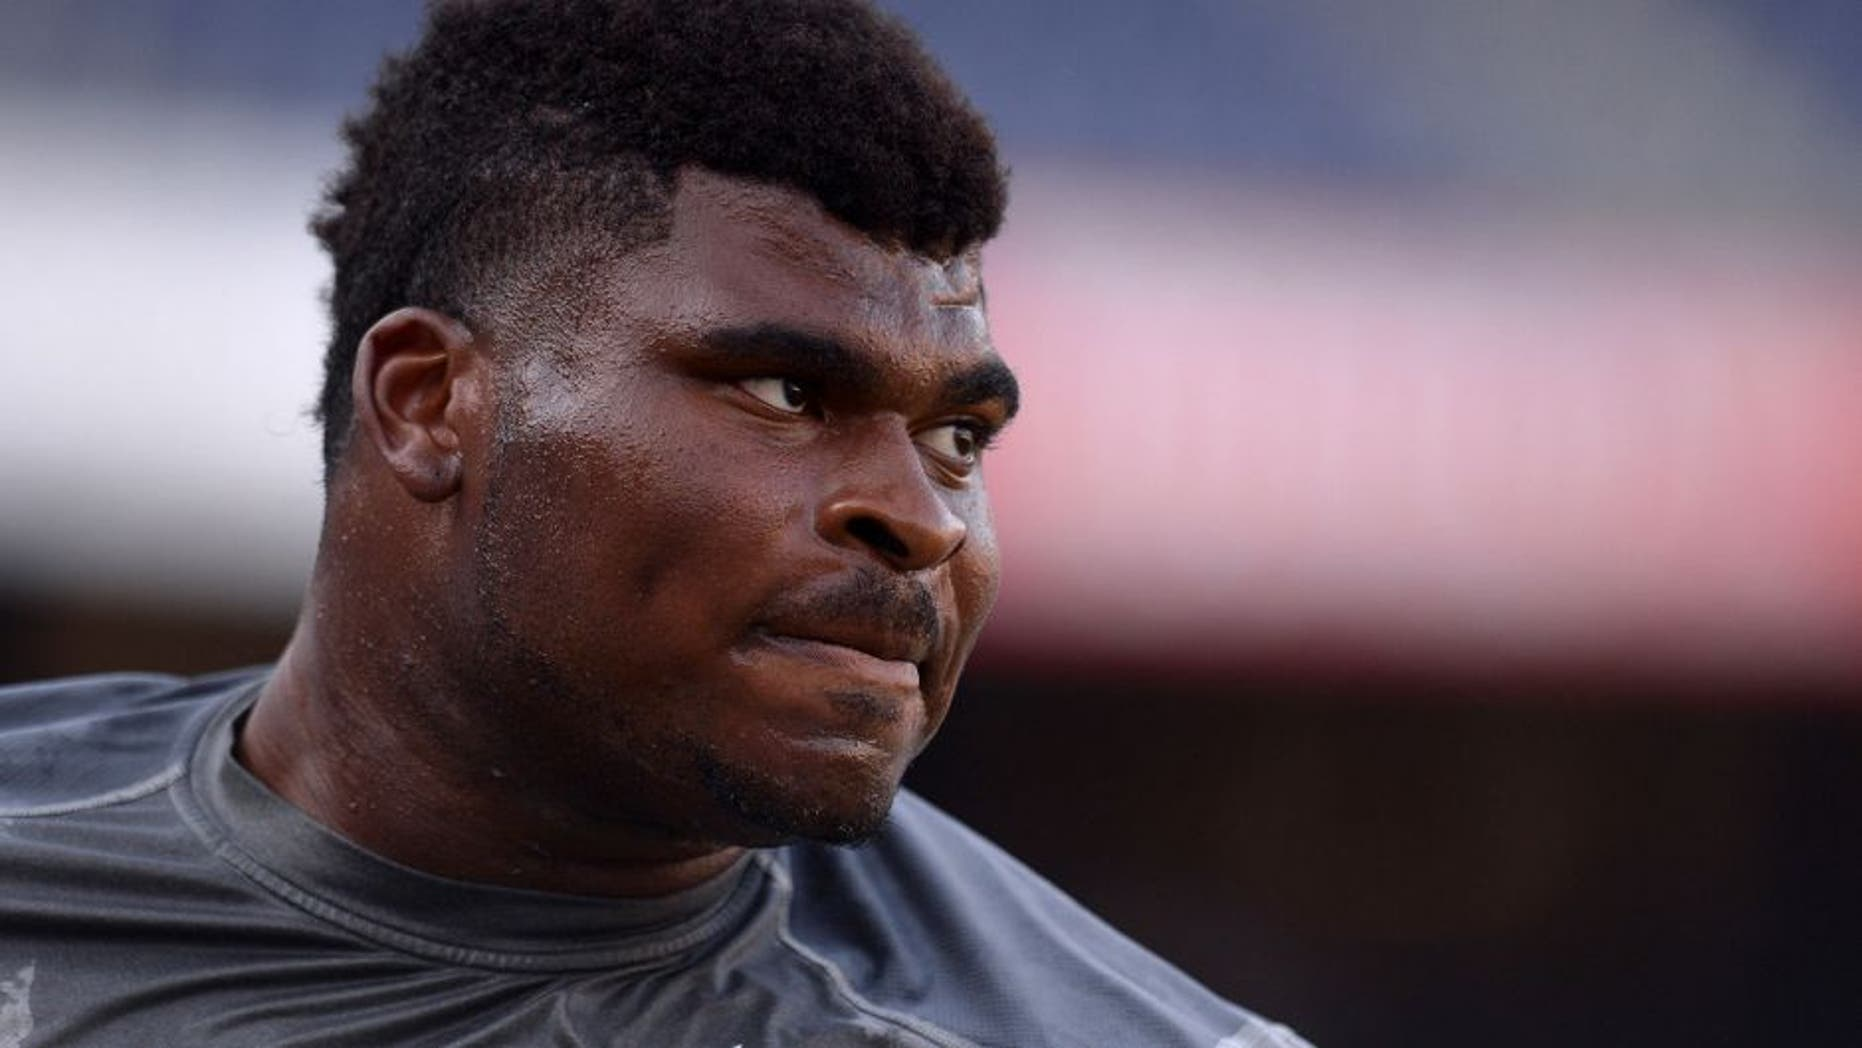 Aug 13, 2015; San Diego, CA, USA; San Diego Chargers tackle D.J. Fluker (76) looks on before the preseason game against the Dallas Cowboys at Qualcomm Stadium. Mandatory Credit: Jake Roth-USA TODAY Sports